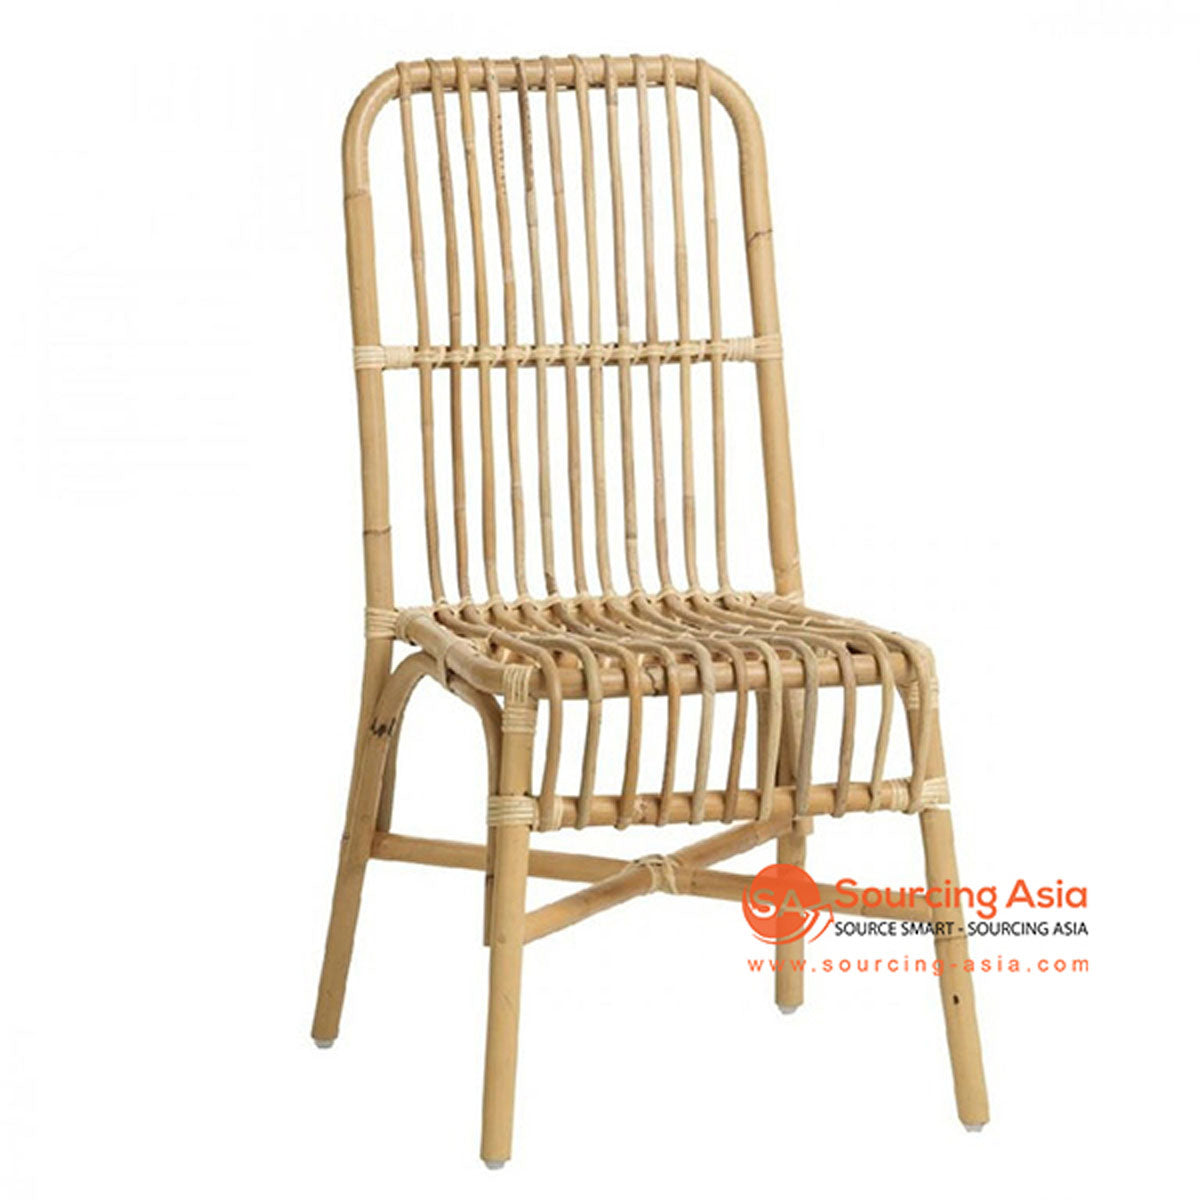 SHL096 NATURAL RATTAN UPHOLSTERED CHAIR